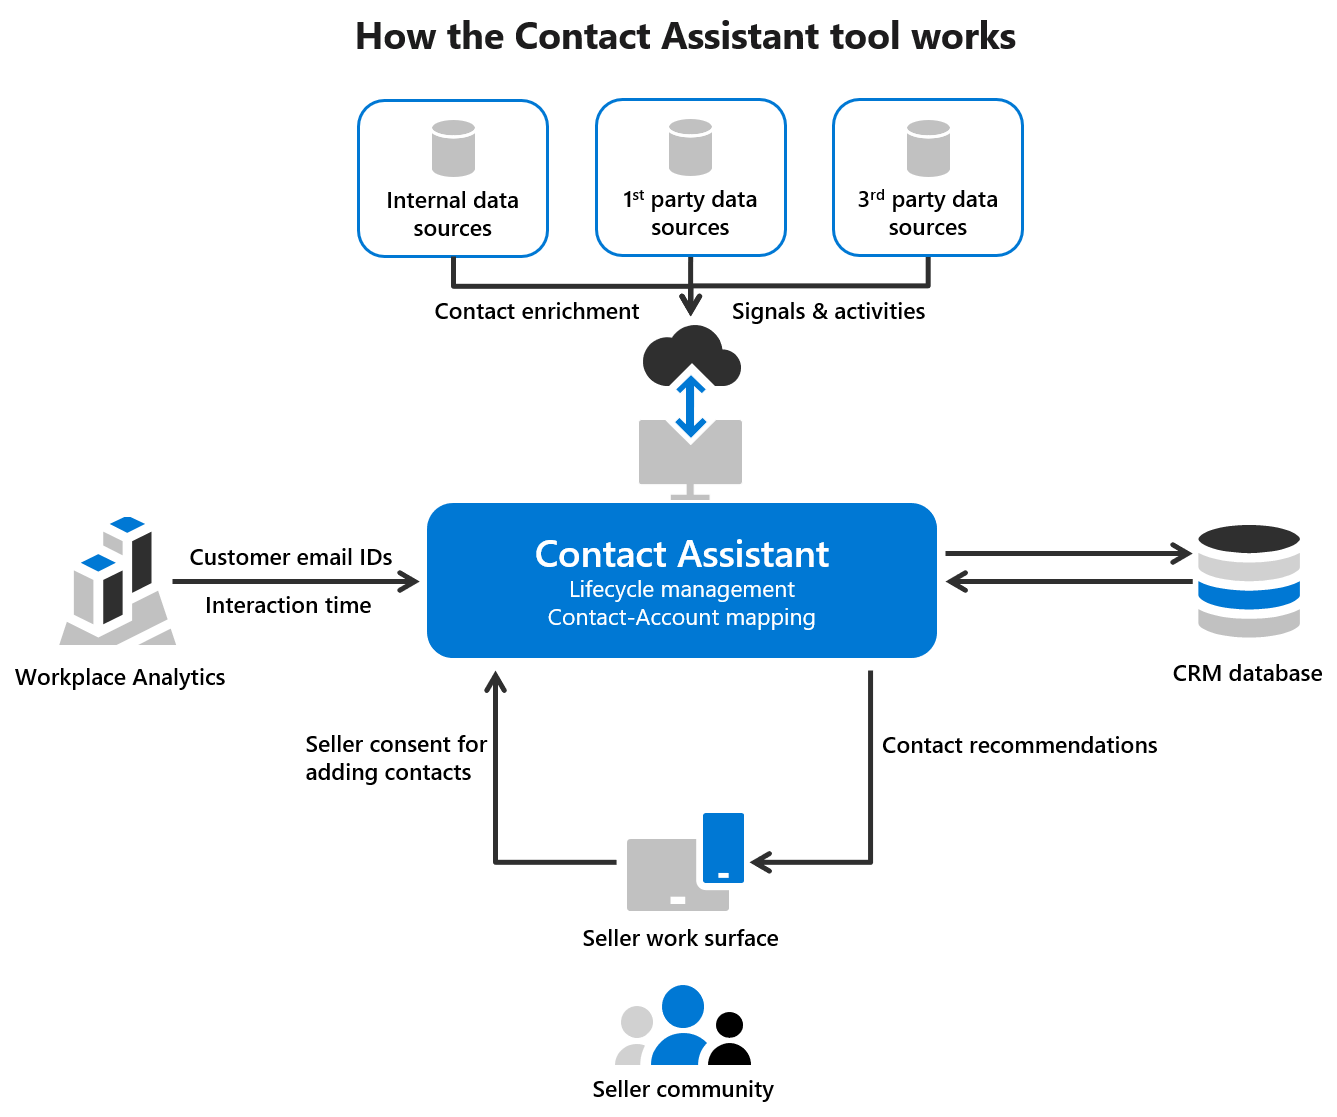 Diagram showing how the Contact Assistant tool collects data for sellers' contact lists. With Contact Assistant at the center, it pulls information from surrounding services. These include Workplace Analytics, CRM databases, sellers' workflows, and internal/first/third-party data sources.